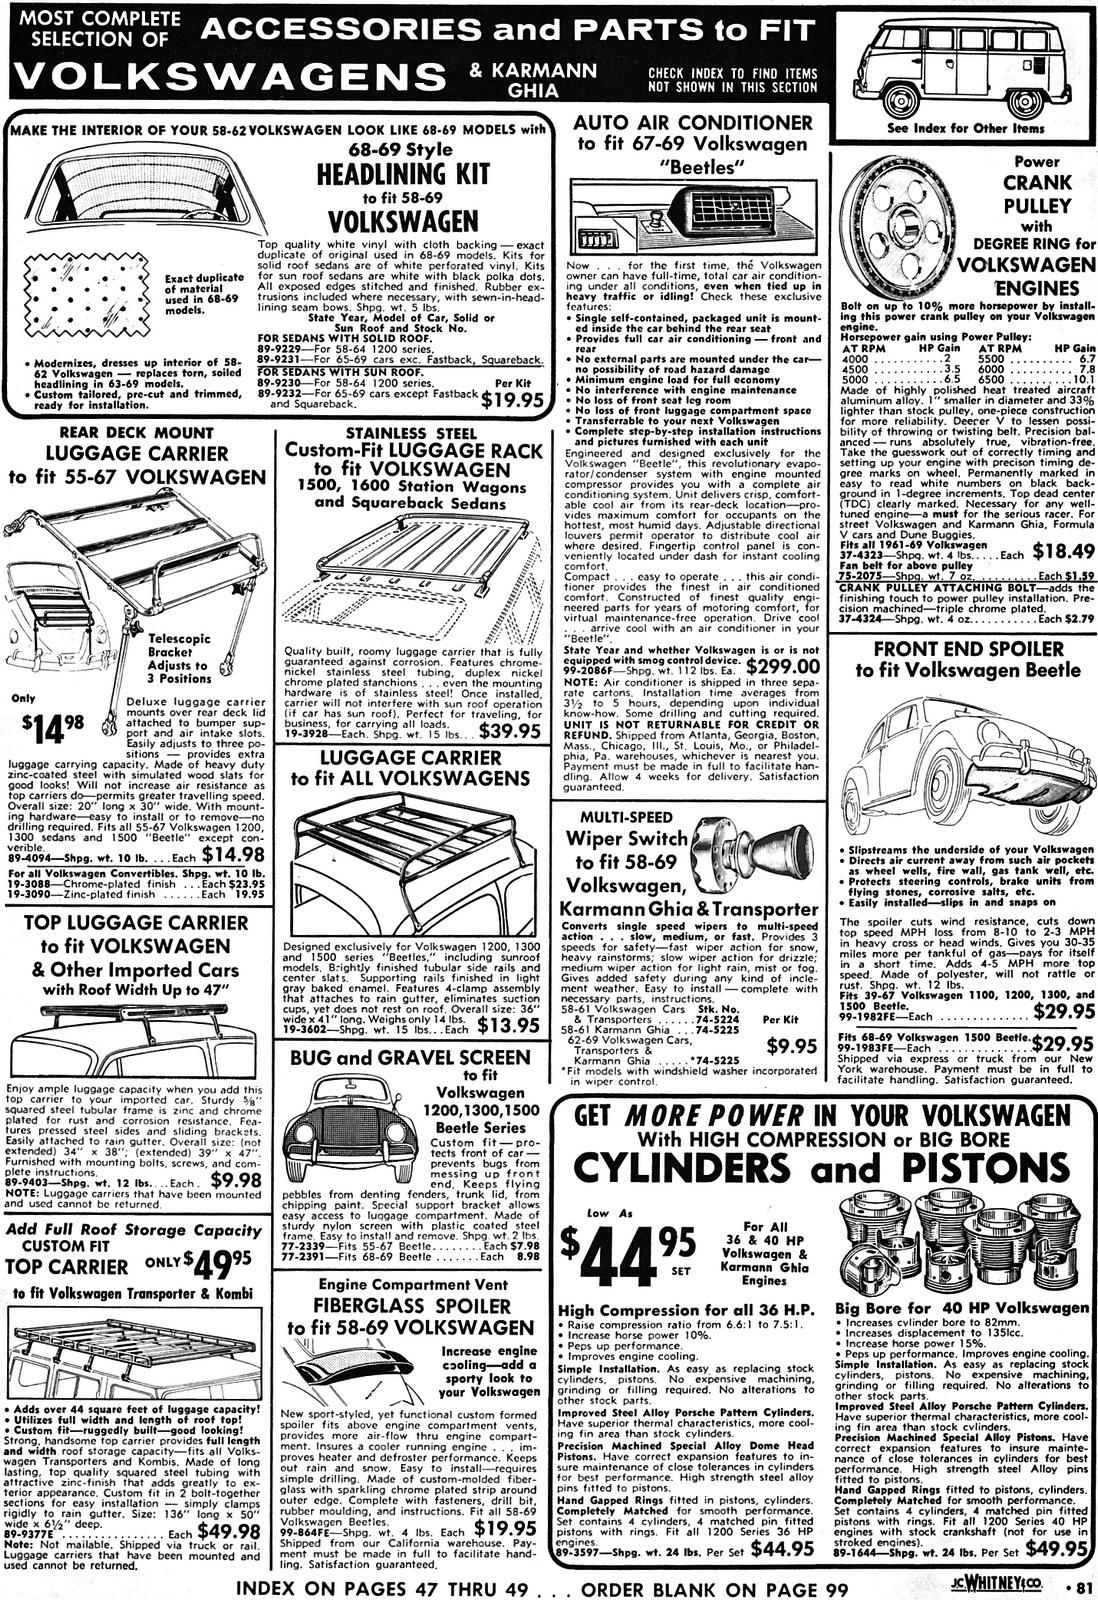 1969 J.C. Whitney Catalog - VW sections pages 2, 81-89